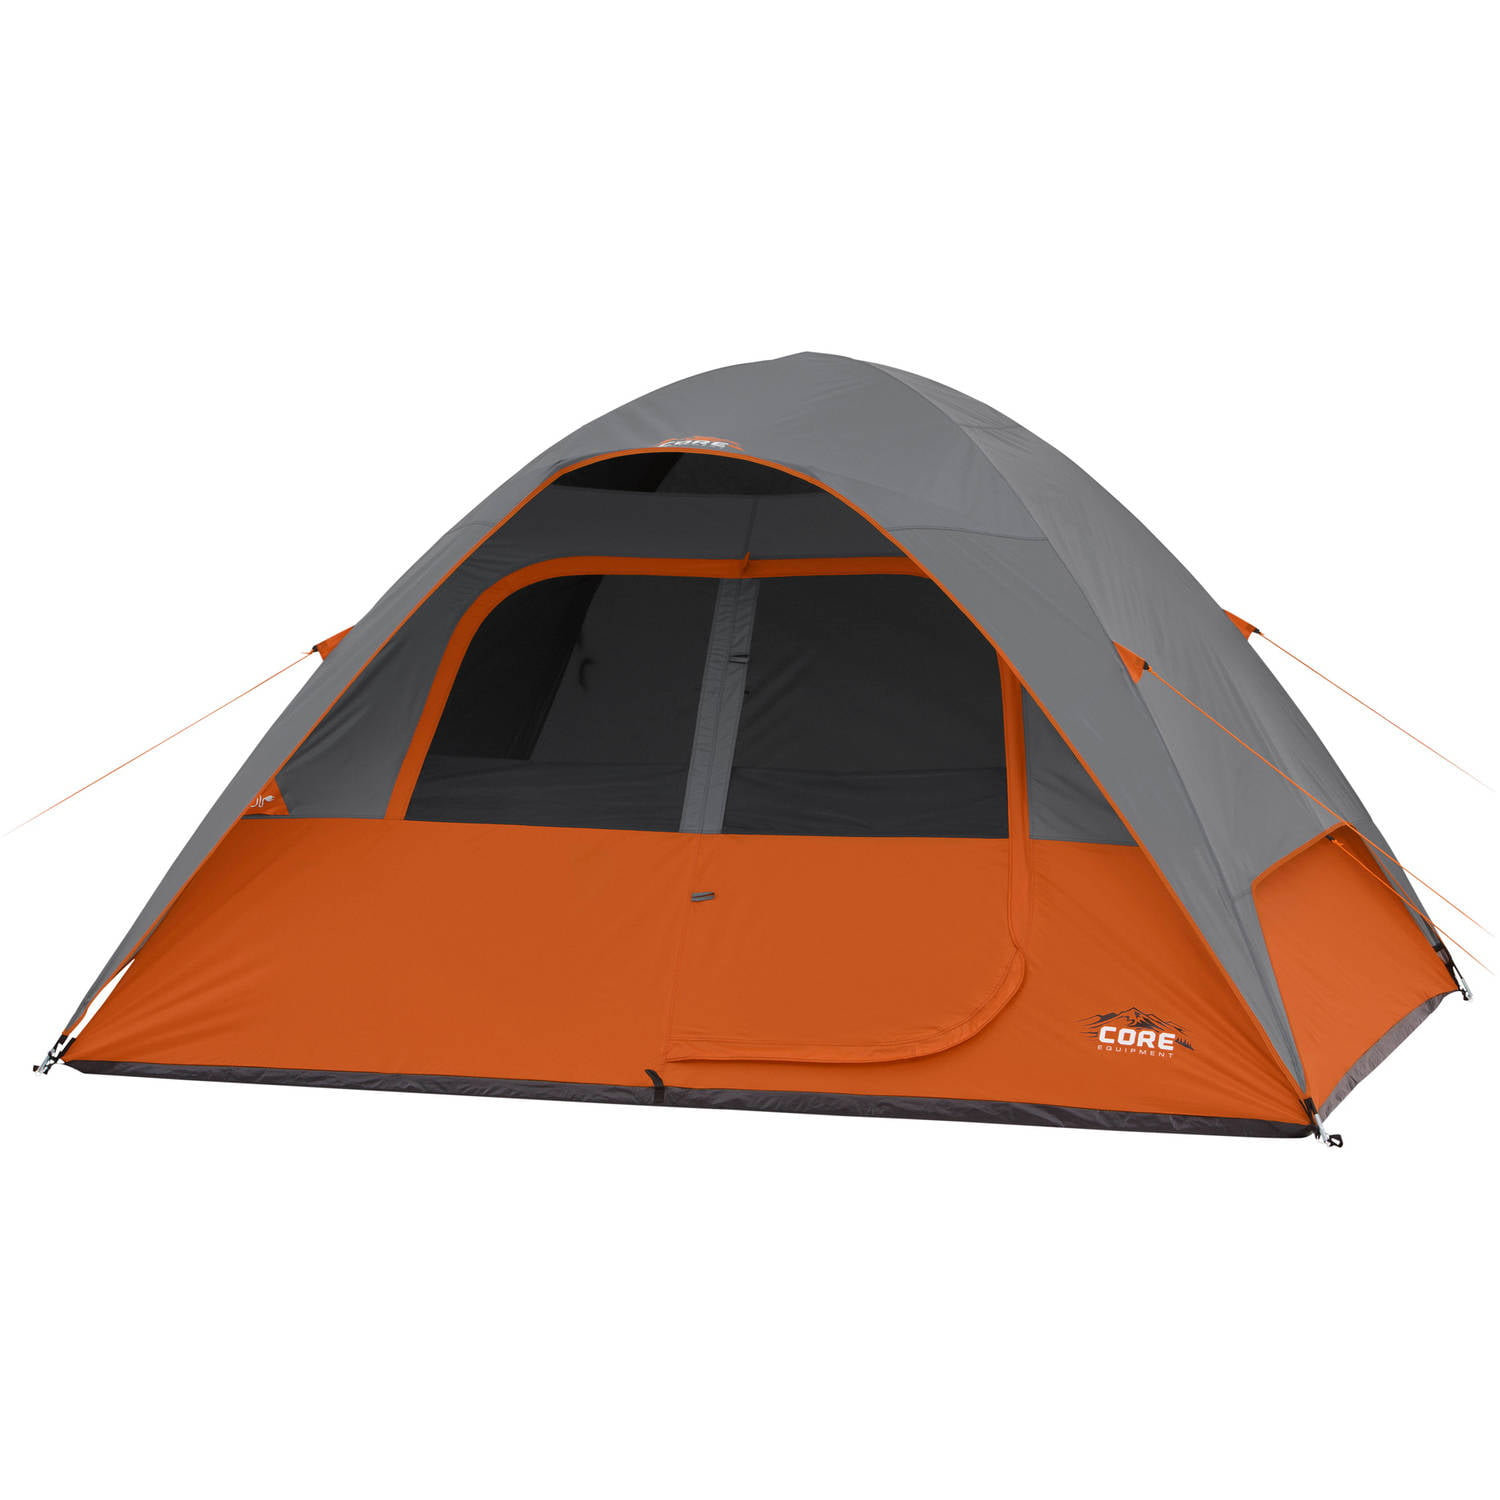 Core Equipment 11' x 9' Dome Tent, Sleeps 6 by Elevate LLC